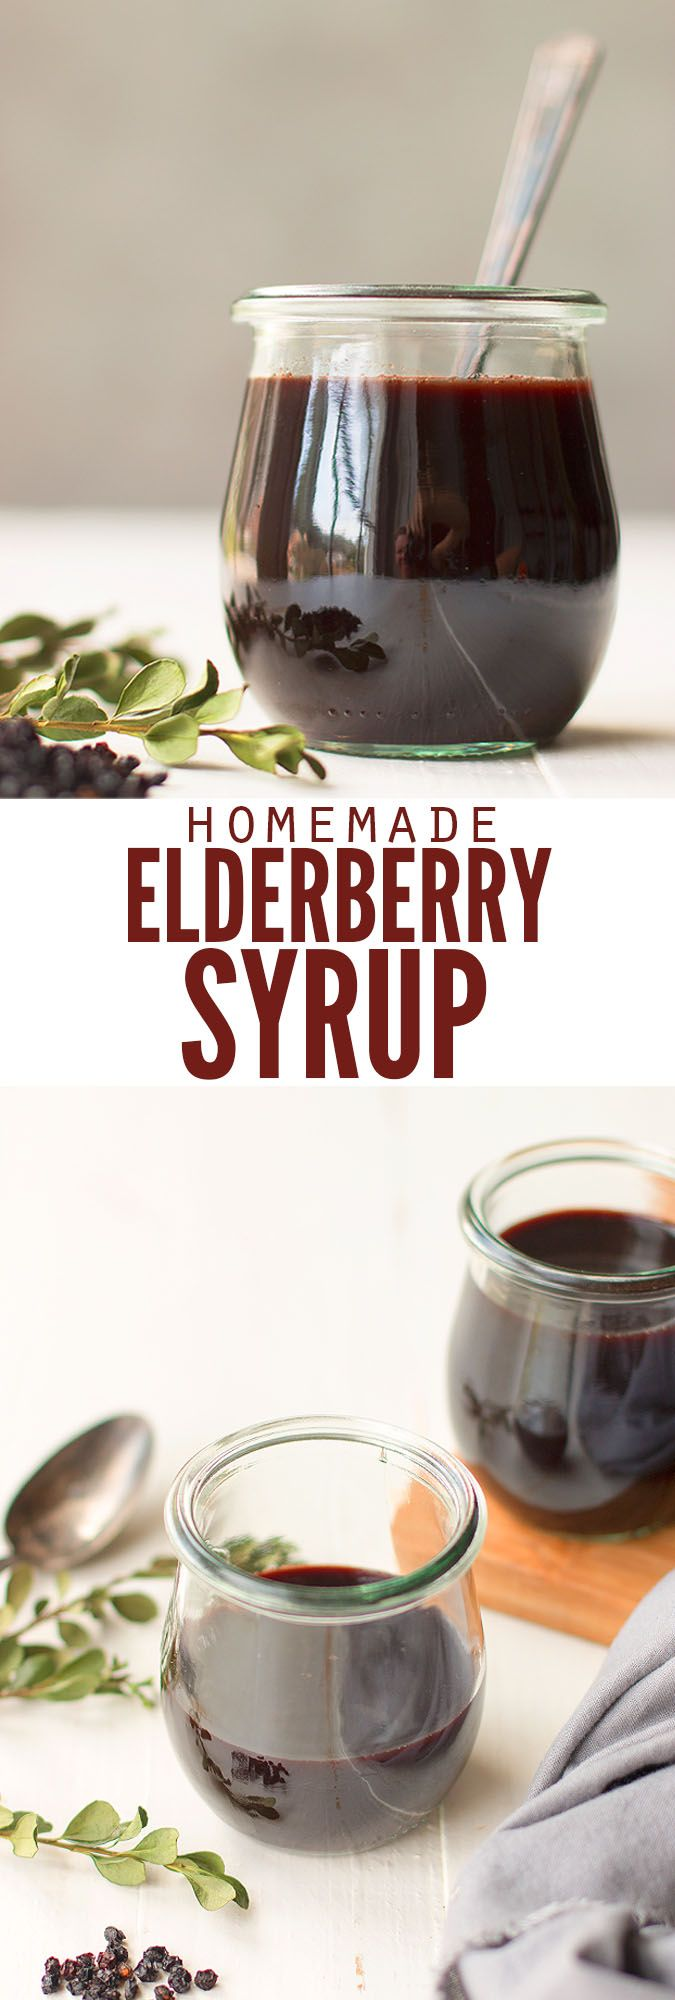 Elderberry syrup has immune-boosting benefits, and it works! I buy dried elderberries from Amazon for this recipe and my kids don't catch colds! :: DontWastetheCrumbs.com